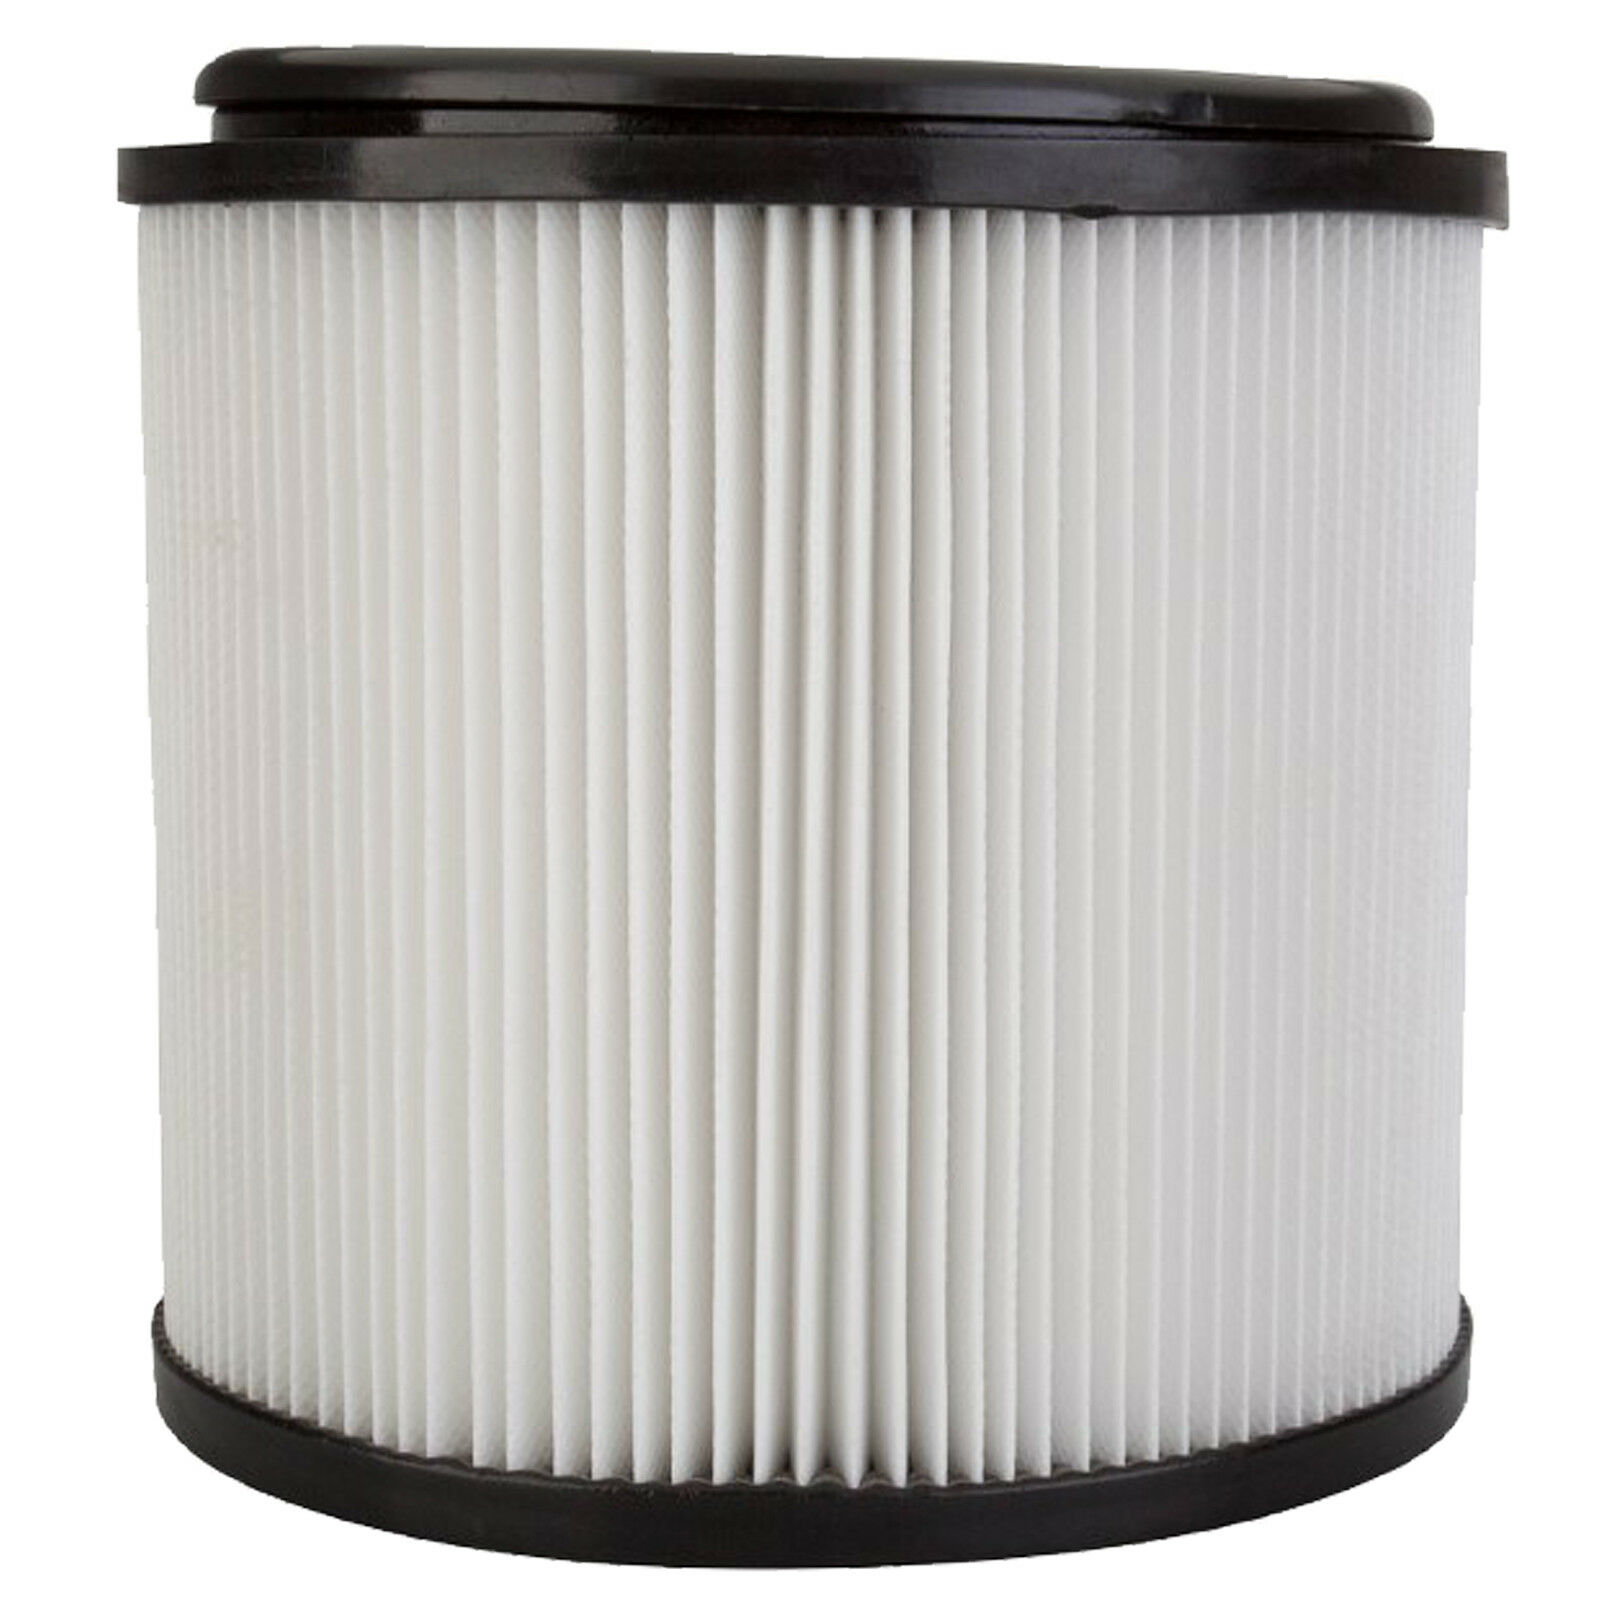 2 Wet Dry Cartridge Filters For Wickes Amp Lidl Parkside